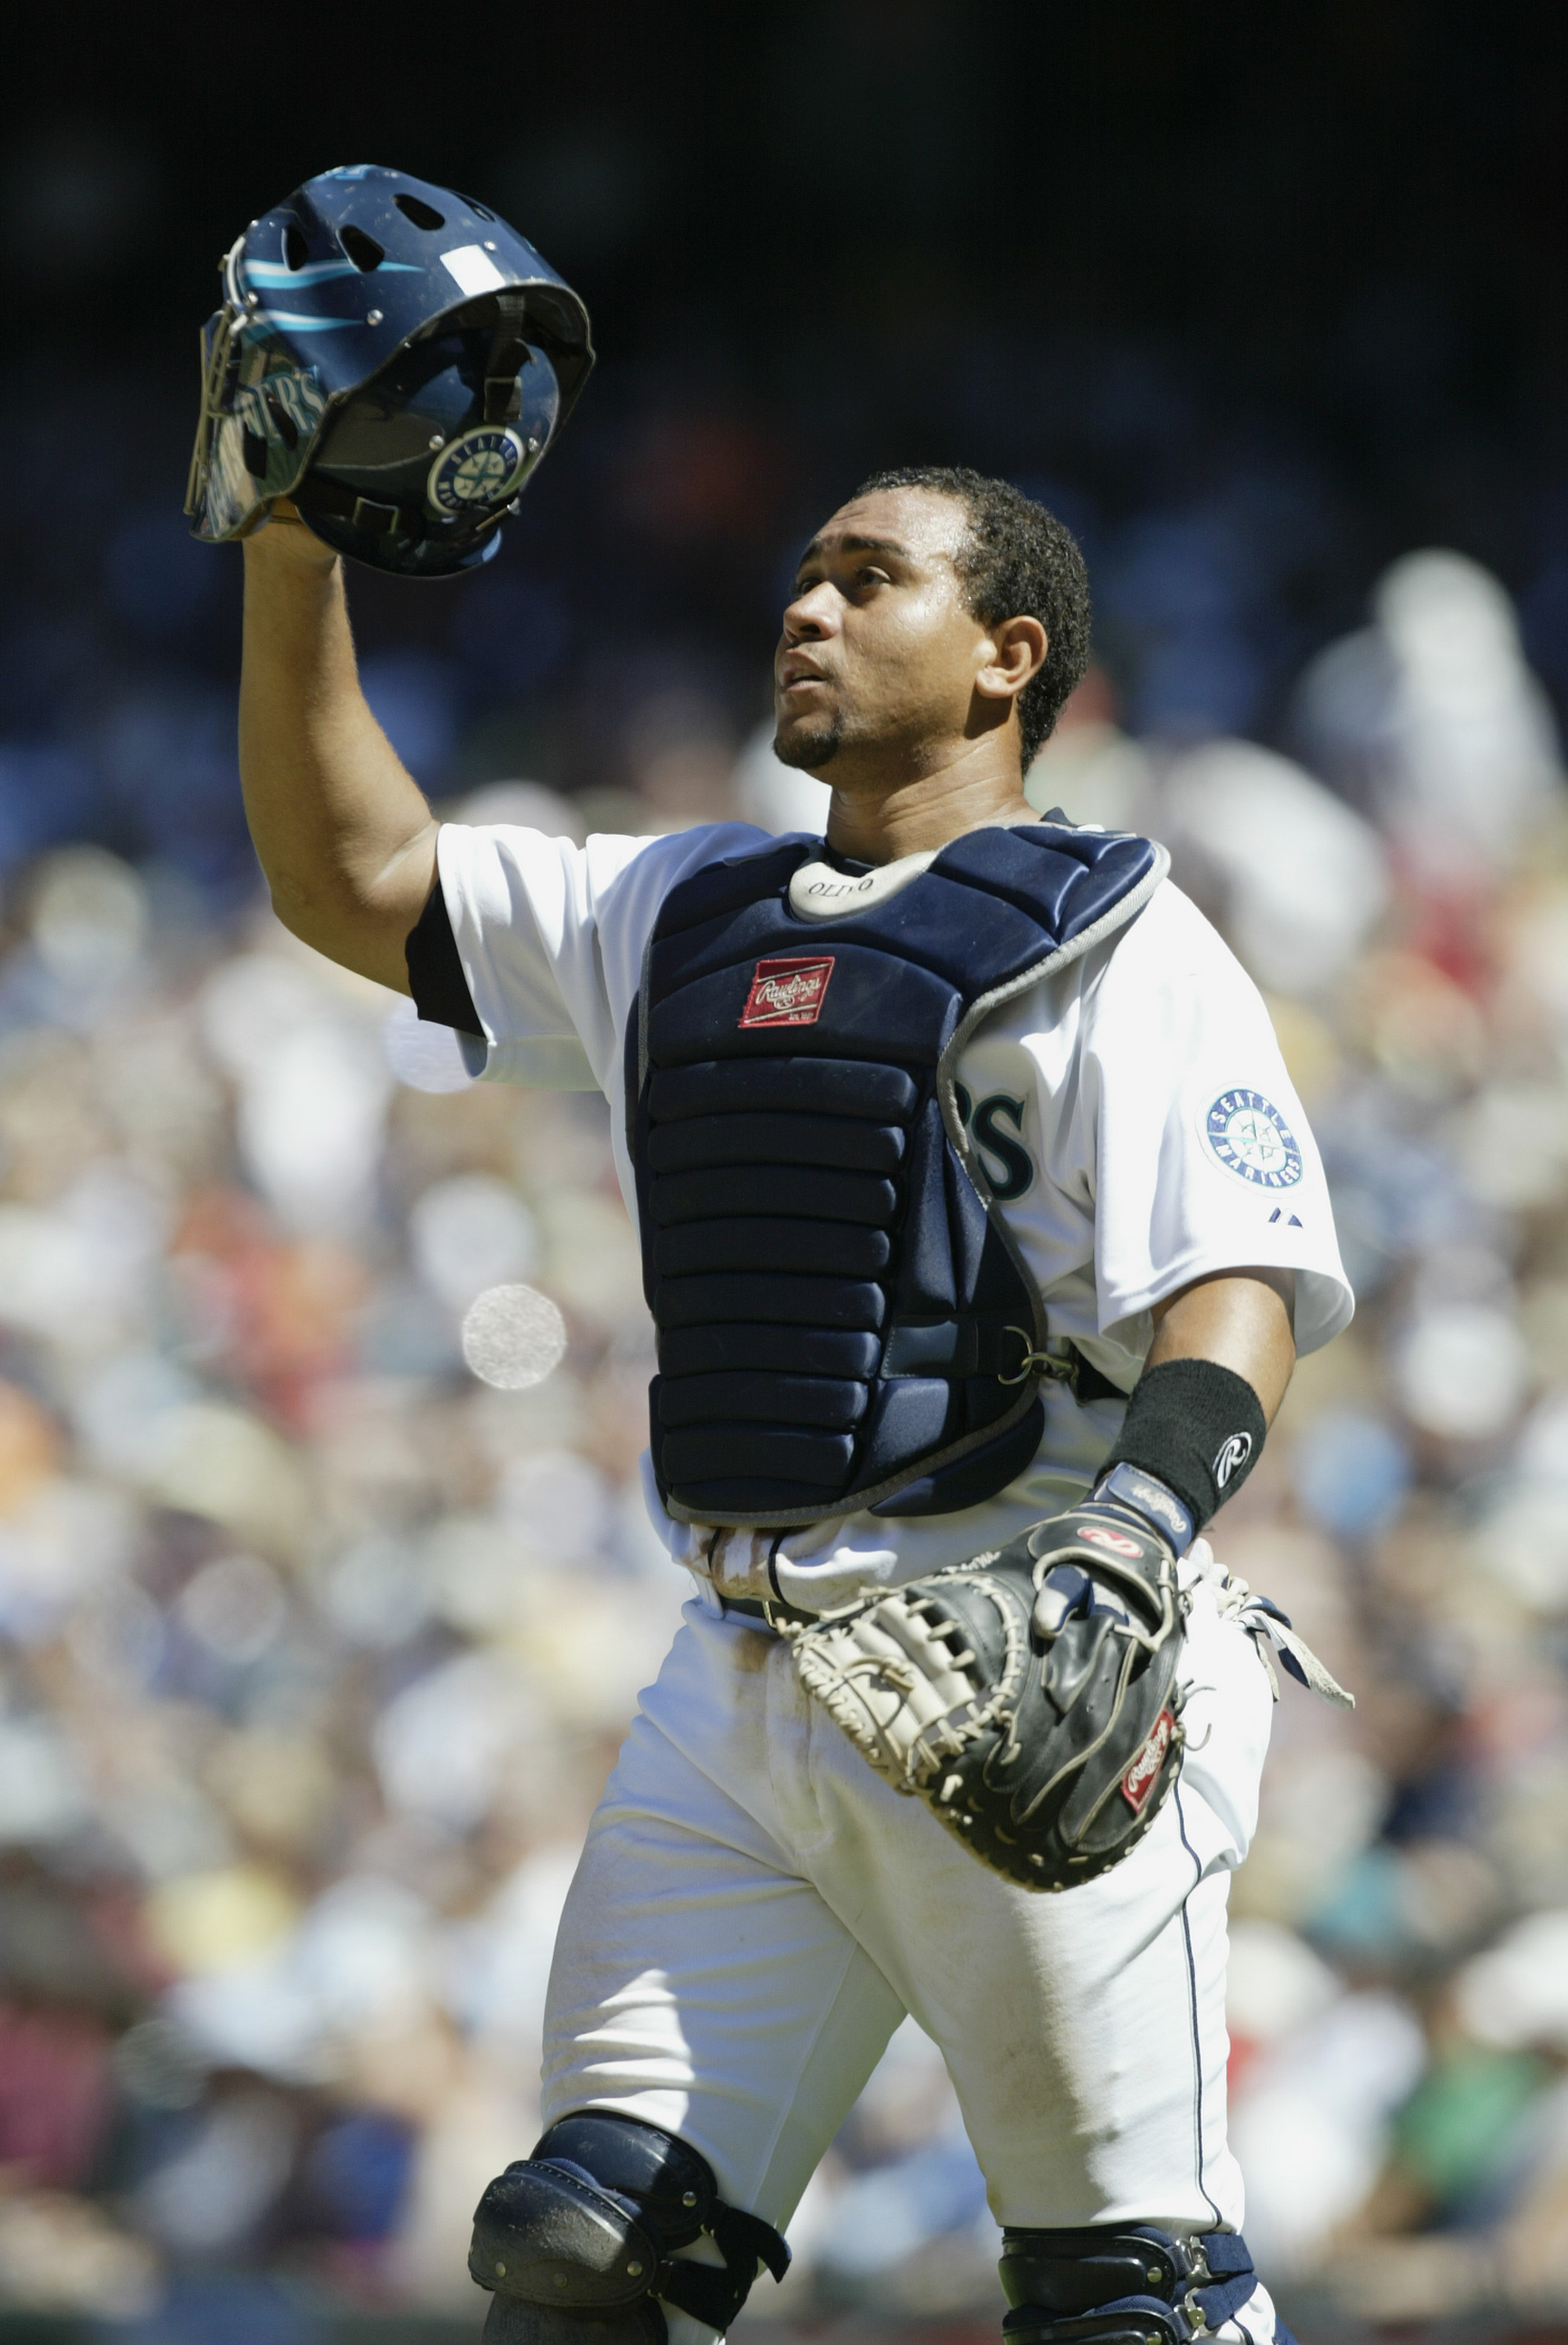 SEATTLE - JULY 17:  Catcher Miguel Olivo #8 of the Seattle Mariners adjusts his mask against the Baltimore Orioles during the MLB game on July 17, 2005 at Safeco Field in Seattle Washington. The Mariners defeated the Orioles 8-2.  (Photo by Otto Greule Jr